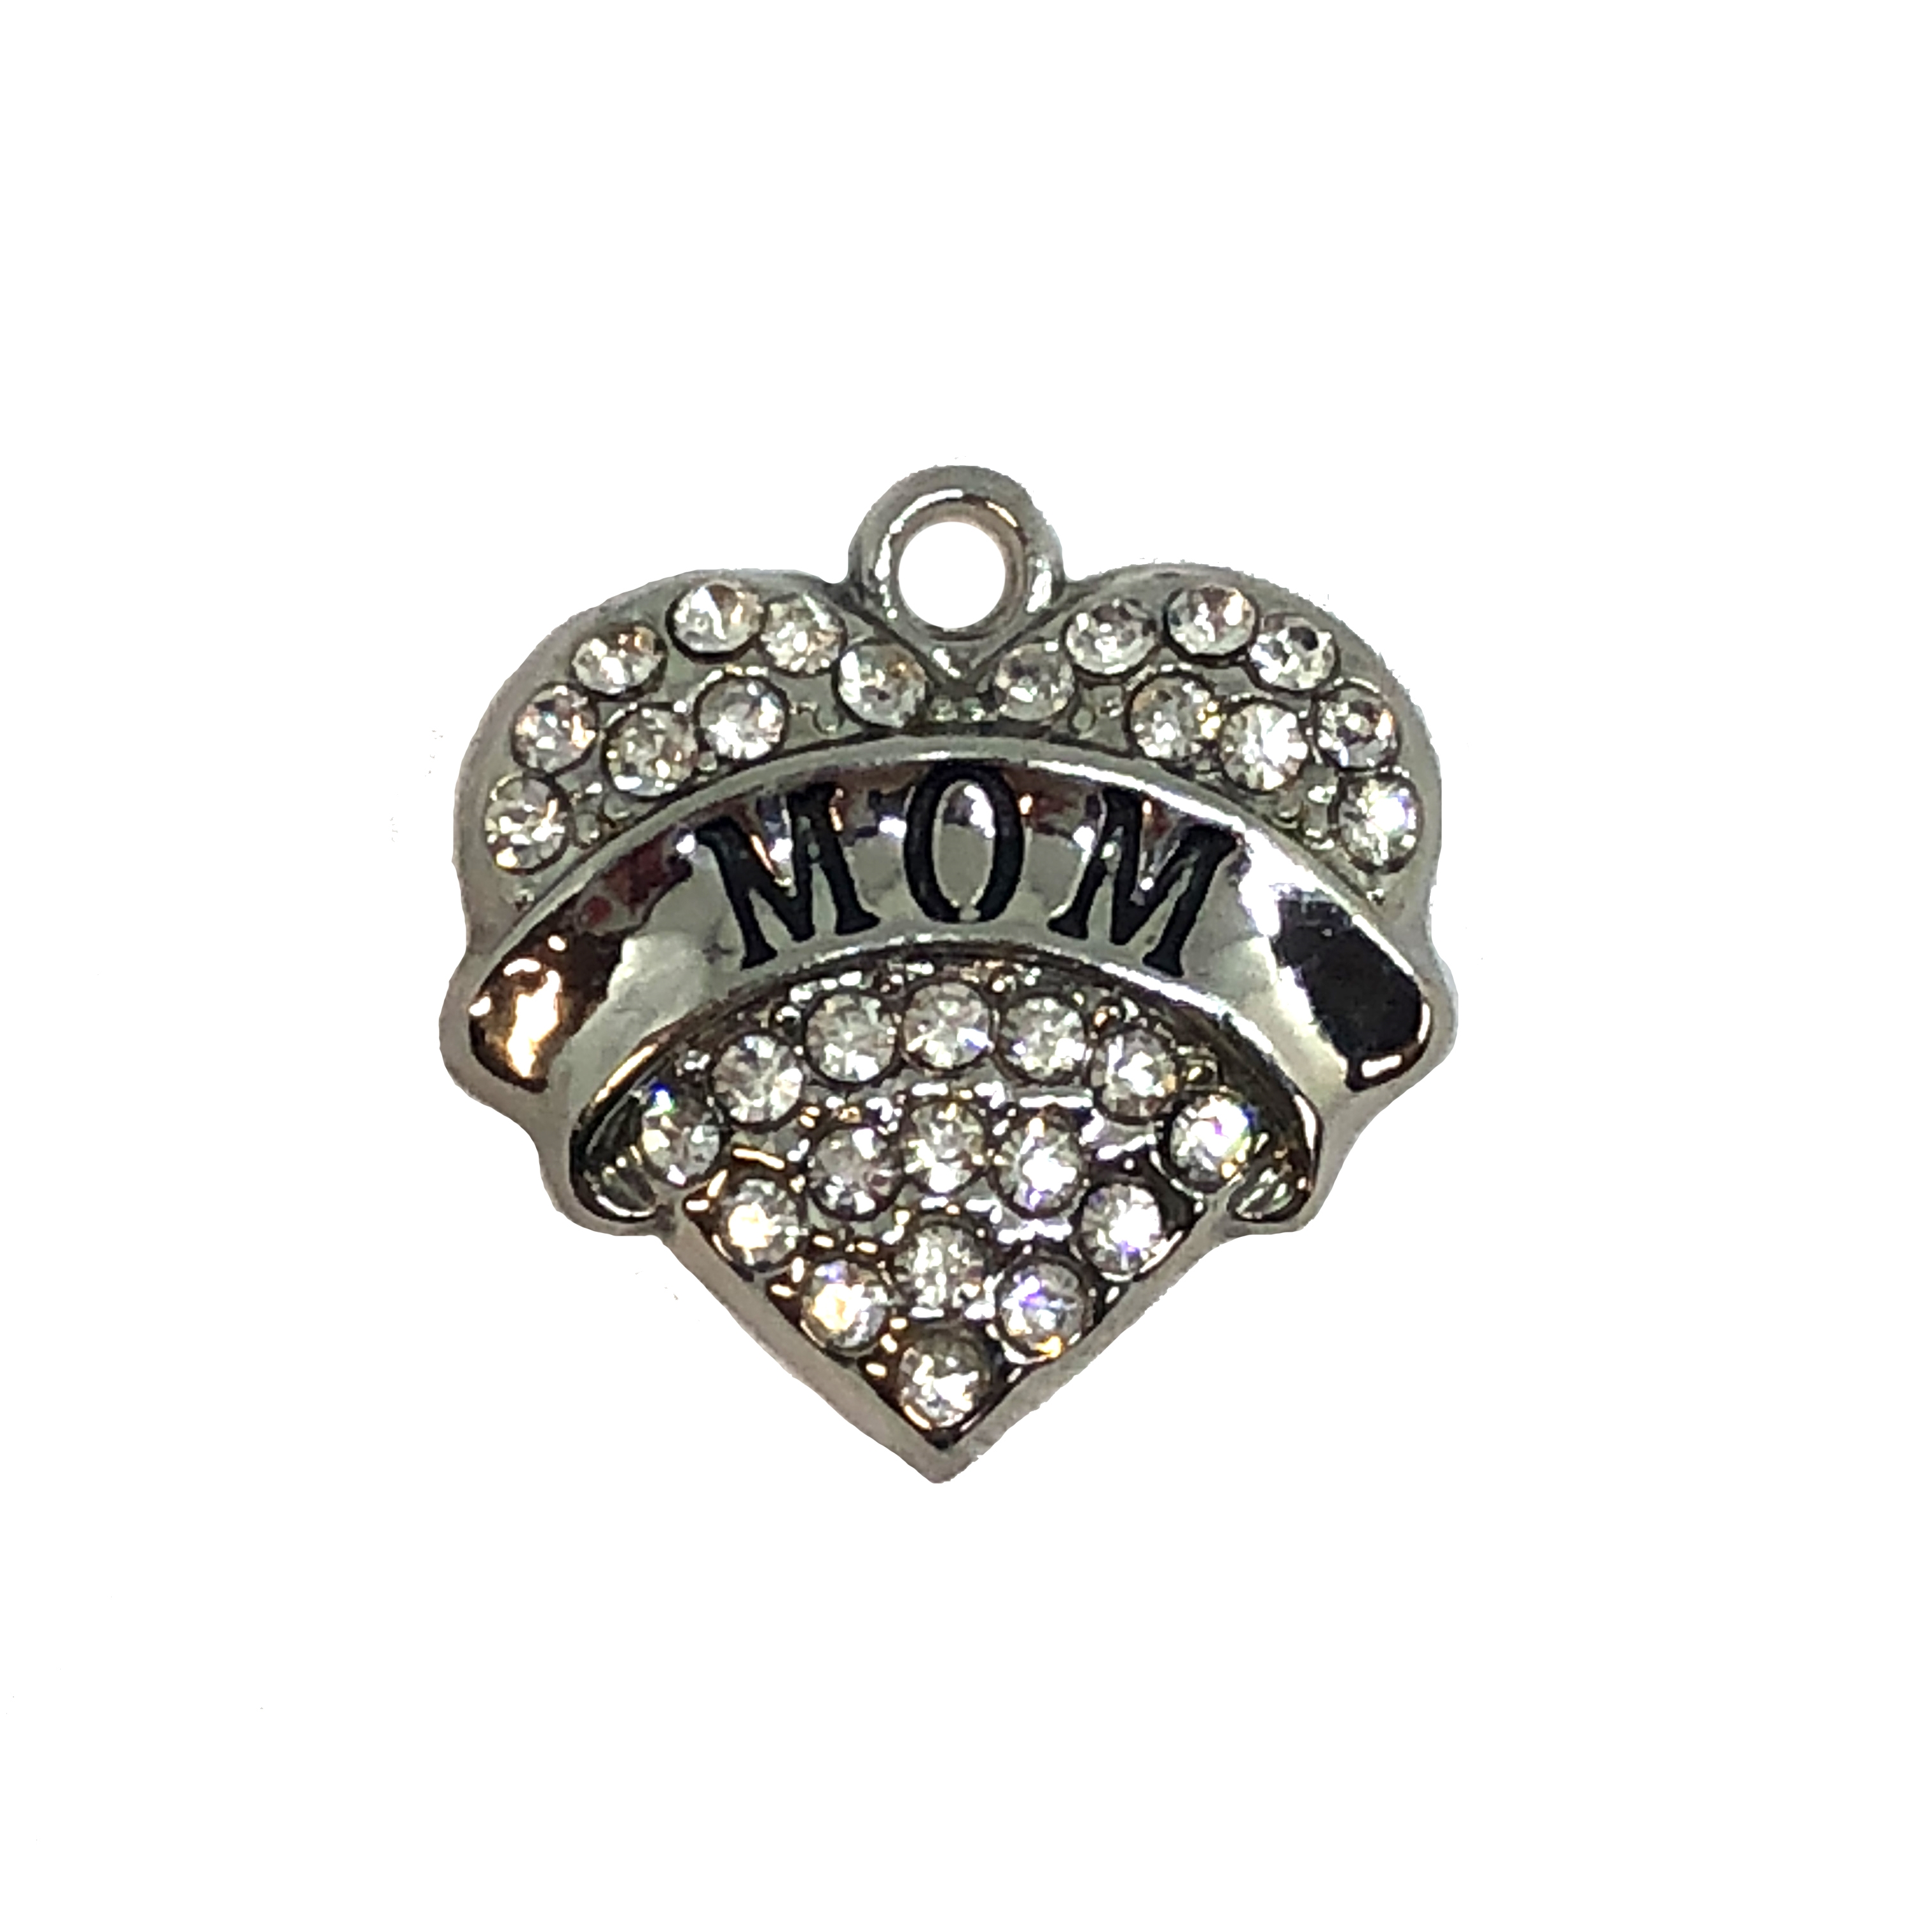 heart charm, mom charm, 07867, charm, charms, hearts, family, sister, B'sue Boutiques, jewelry supplies, embellishments, silvertone, rhinestones